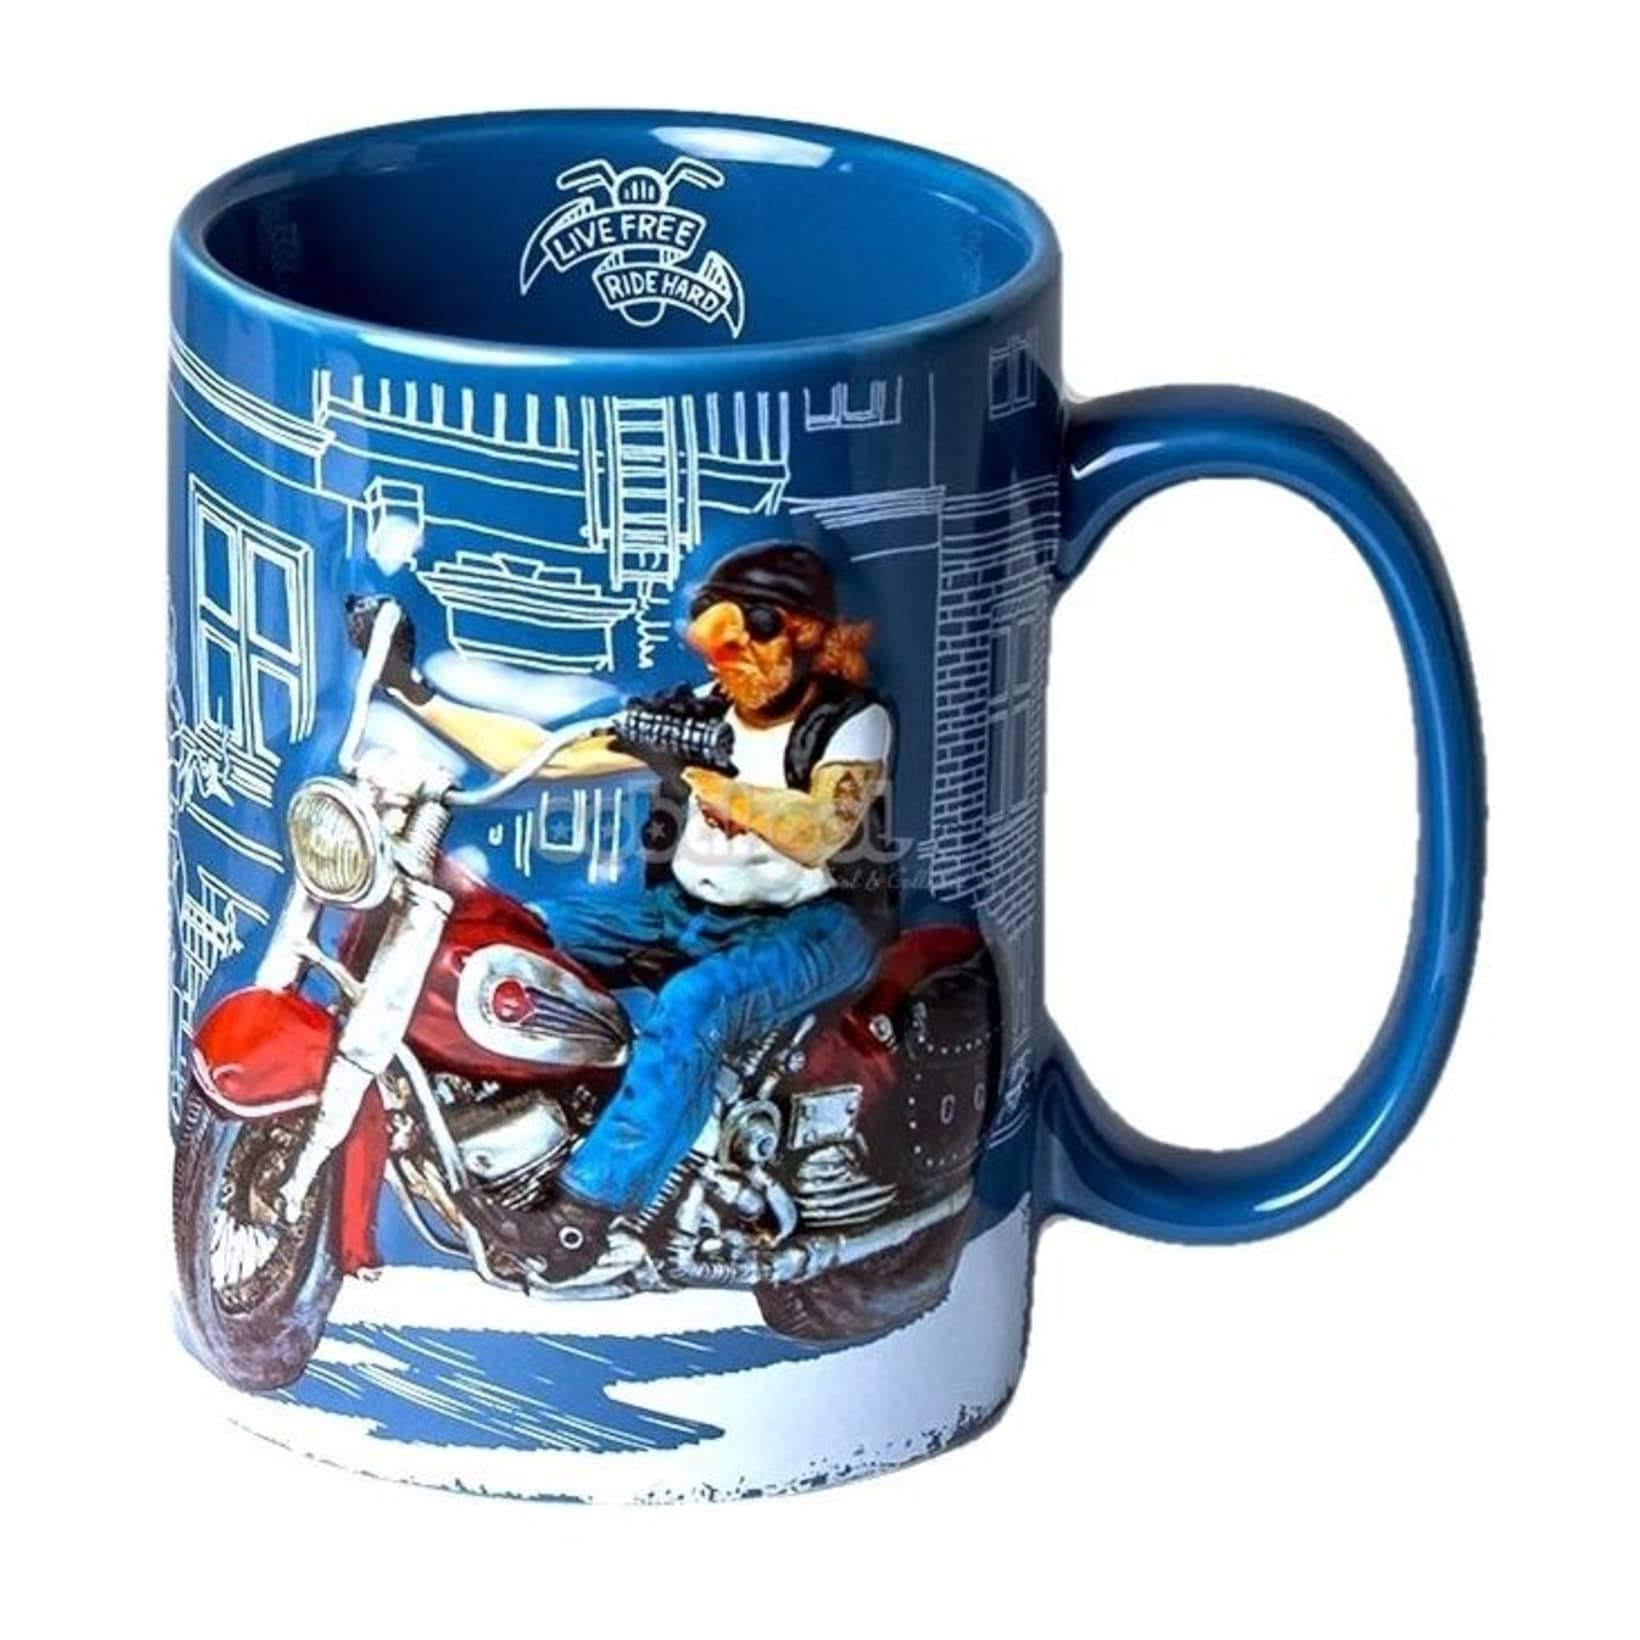 Art Comic The Decorative Special Forchino Motorbike Mug n0kwOP8